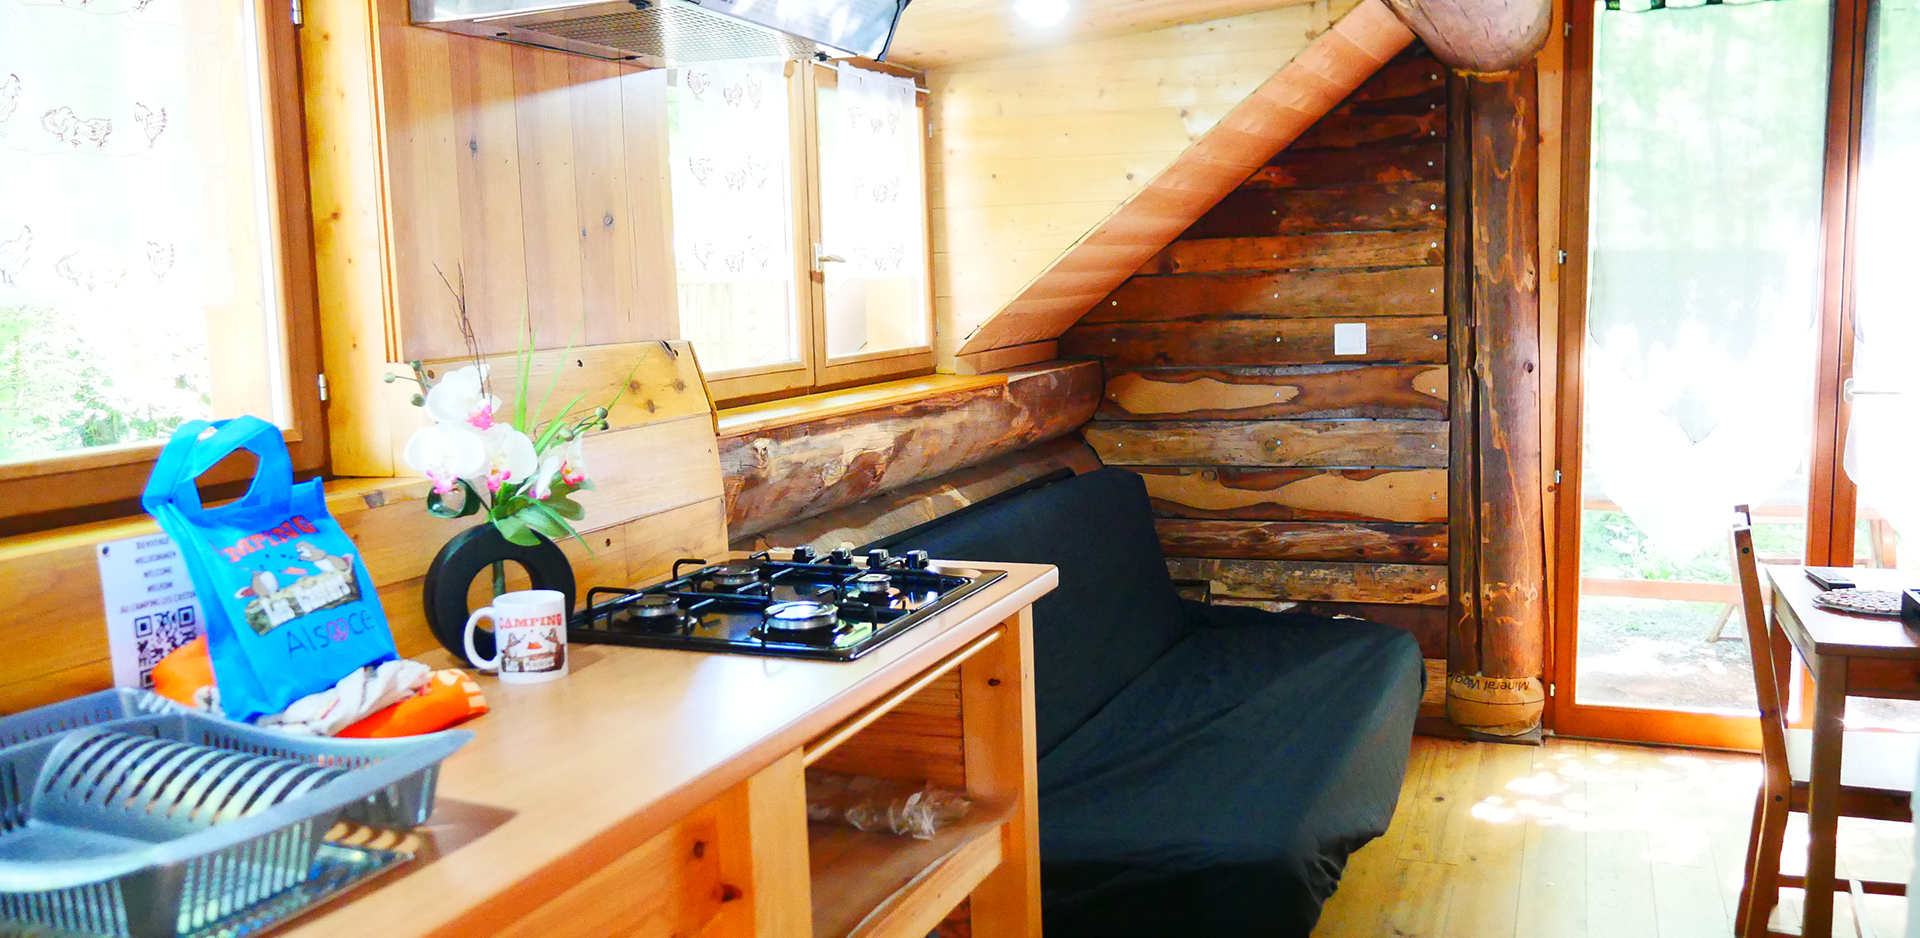 Holiday rentals of log cabins and wooden chalet at the foothills of the Vosges Mountains